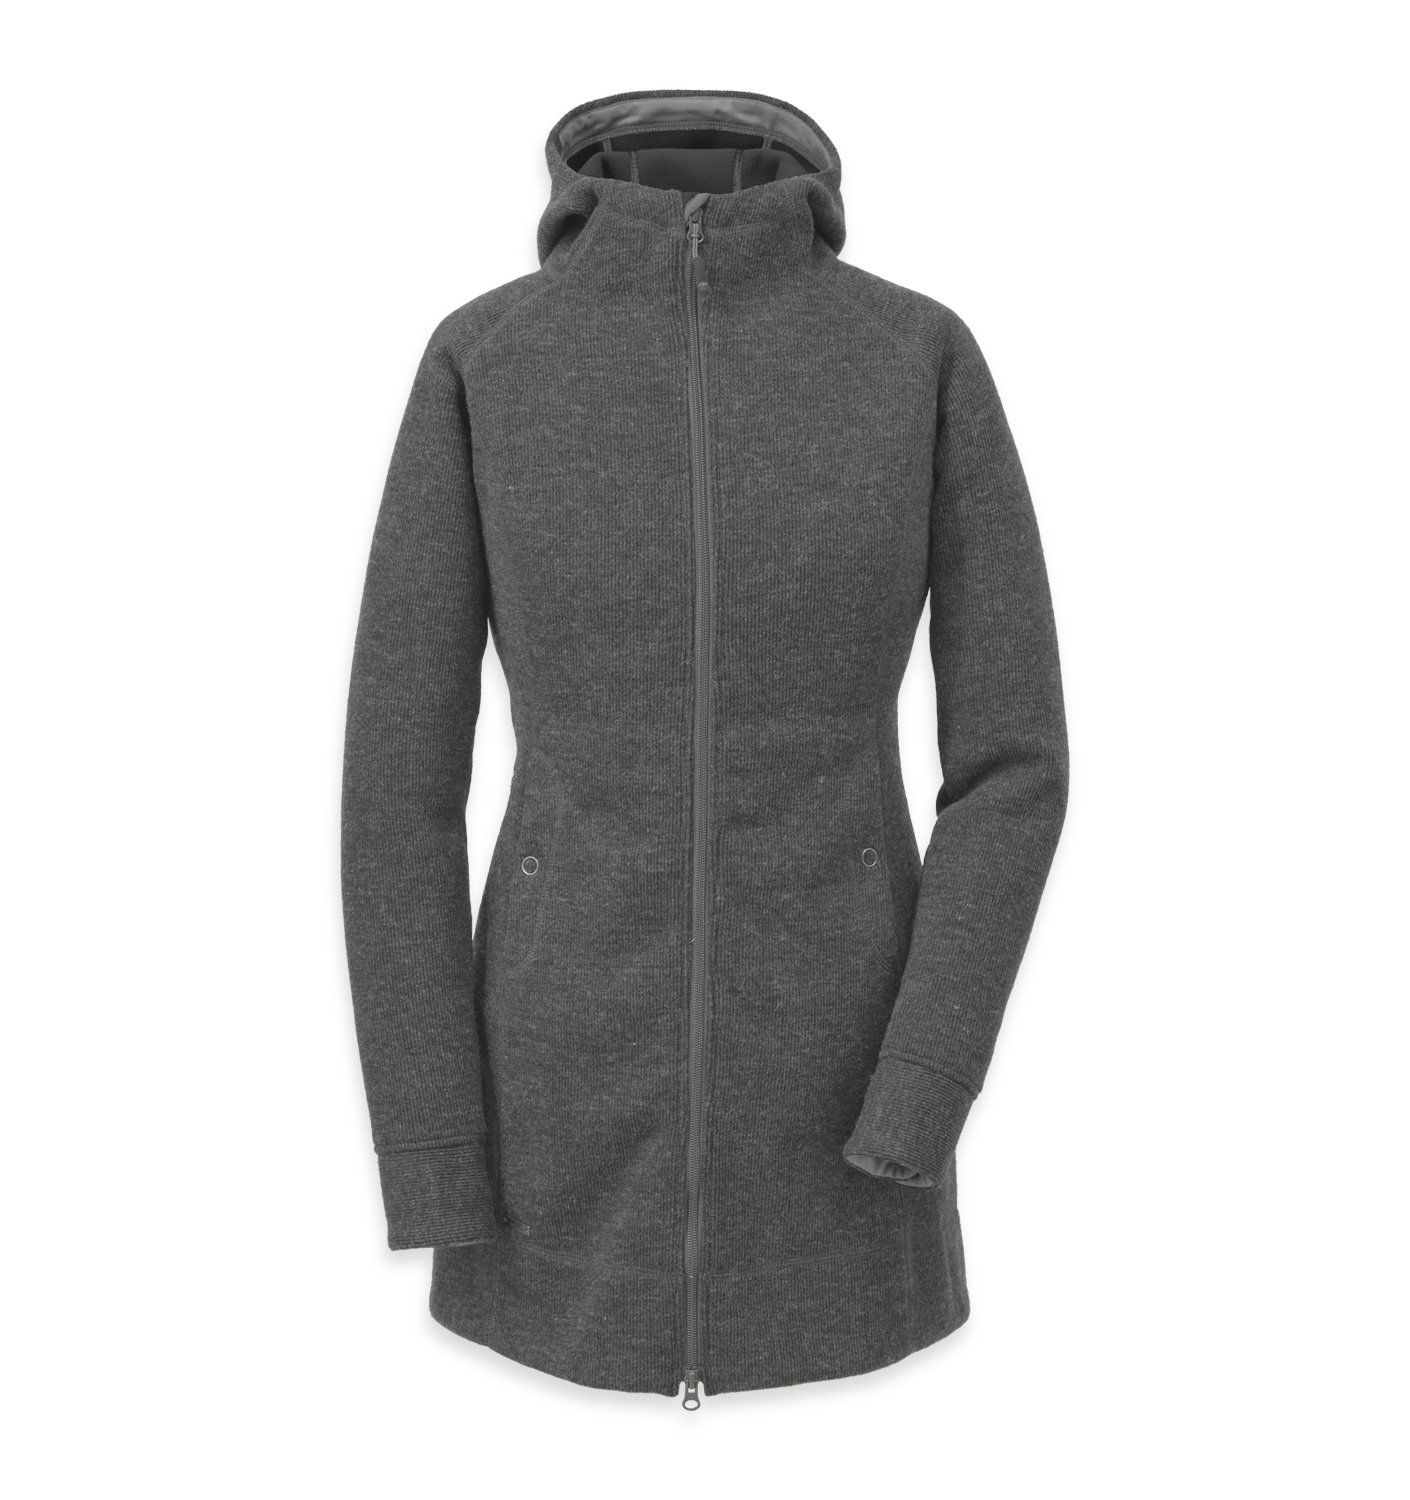 Outdoor Research Women's Salida Long Hoody, Charcoal, L by Outdoor Research